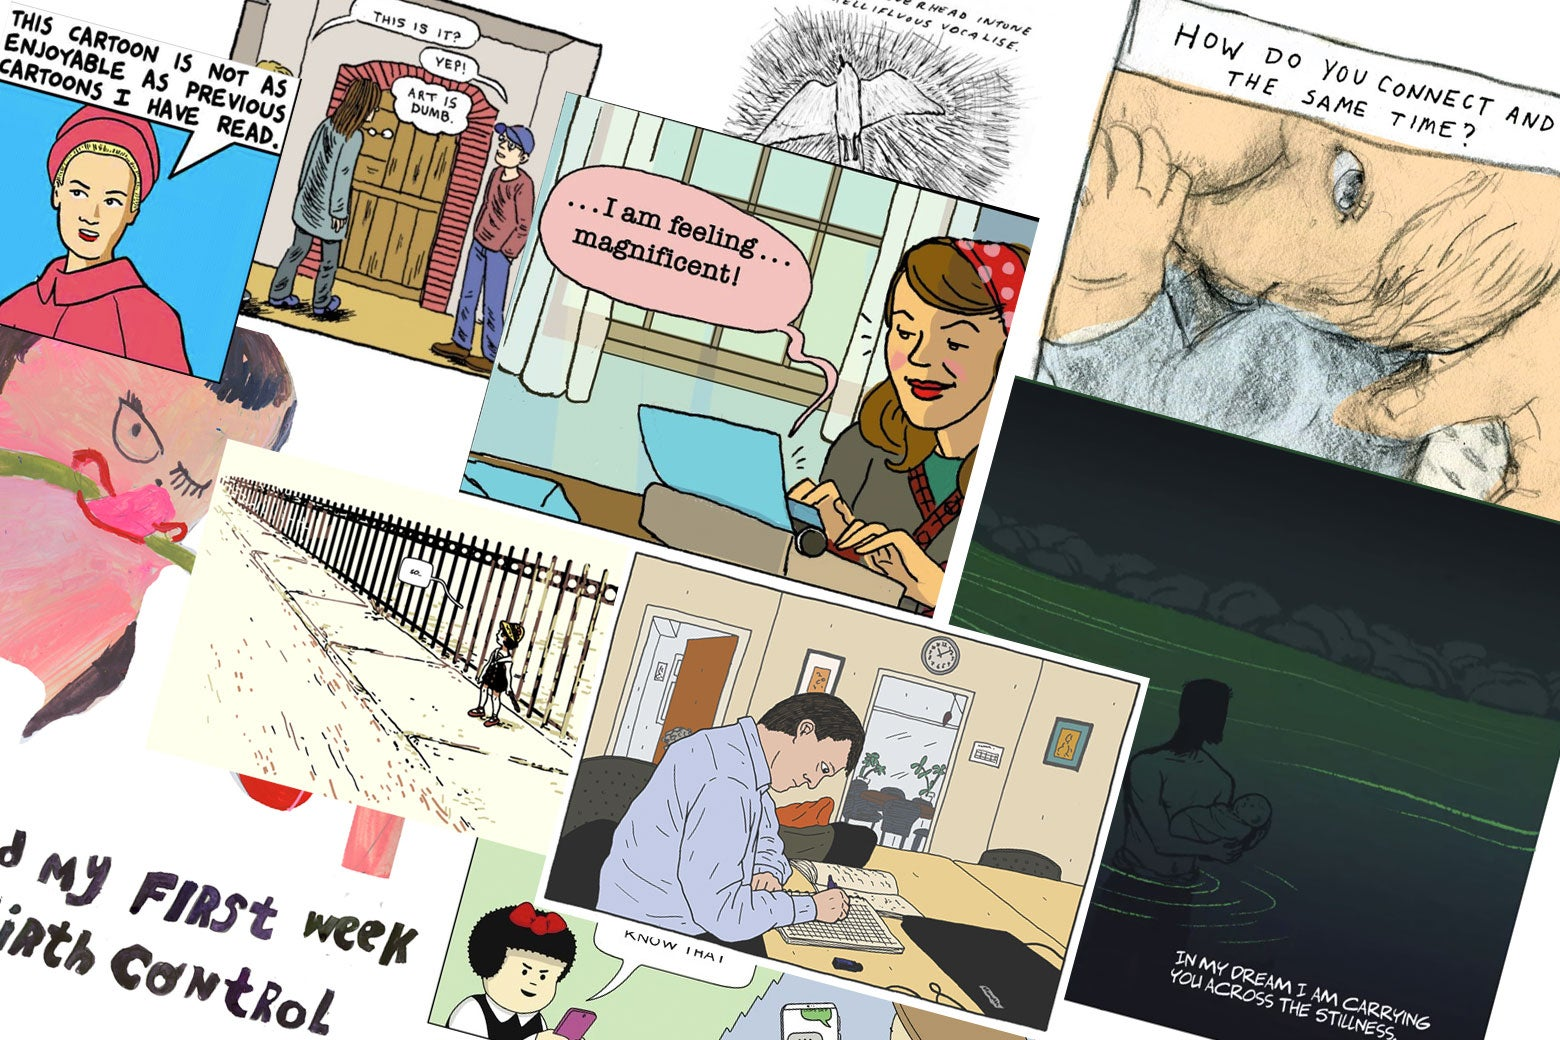 Collage of web comics